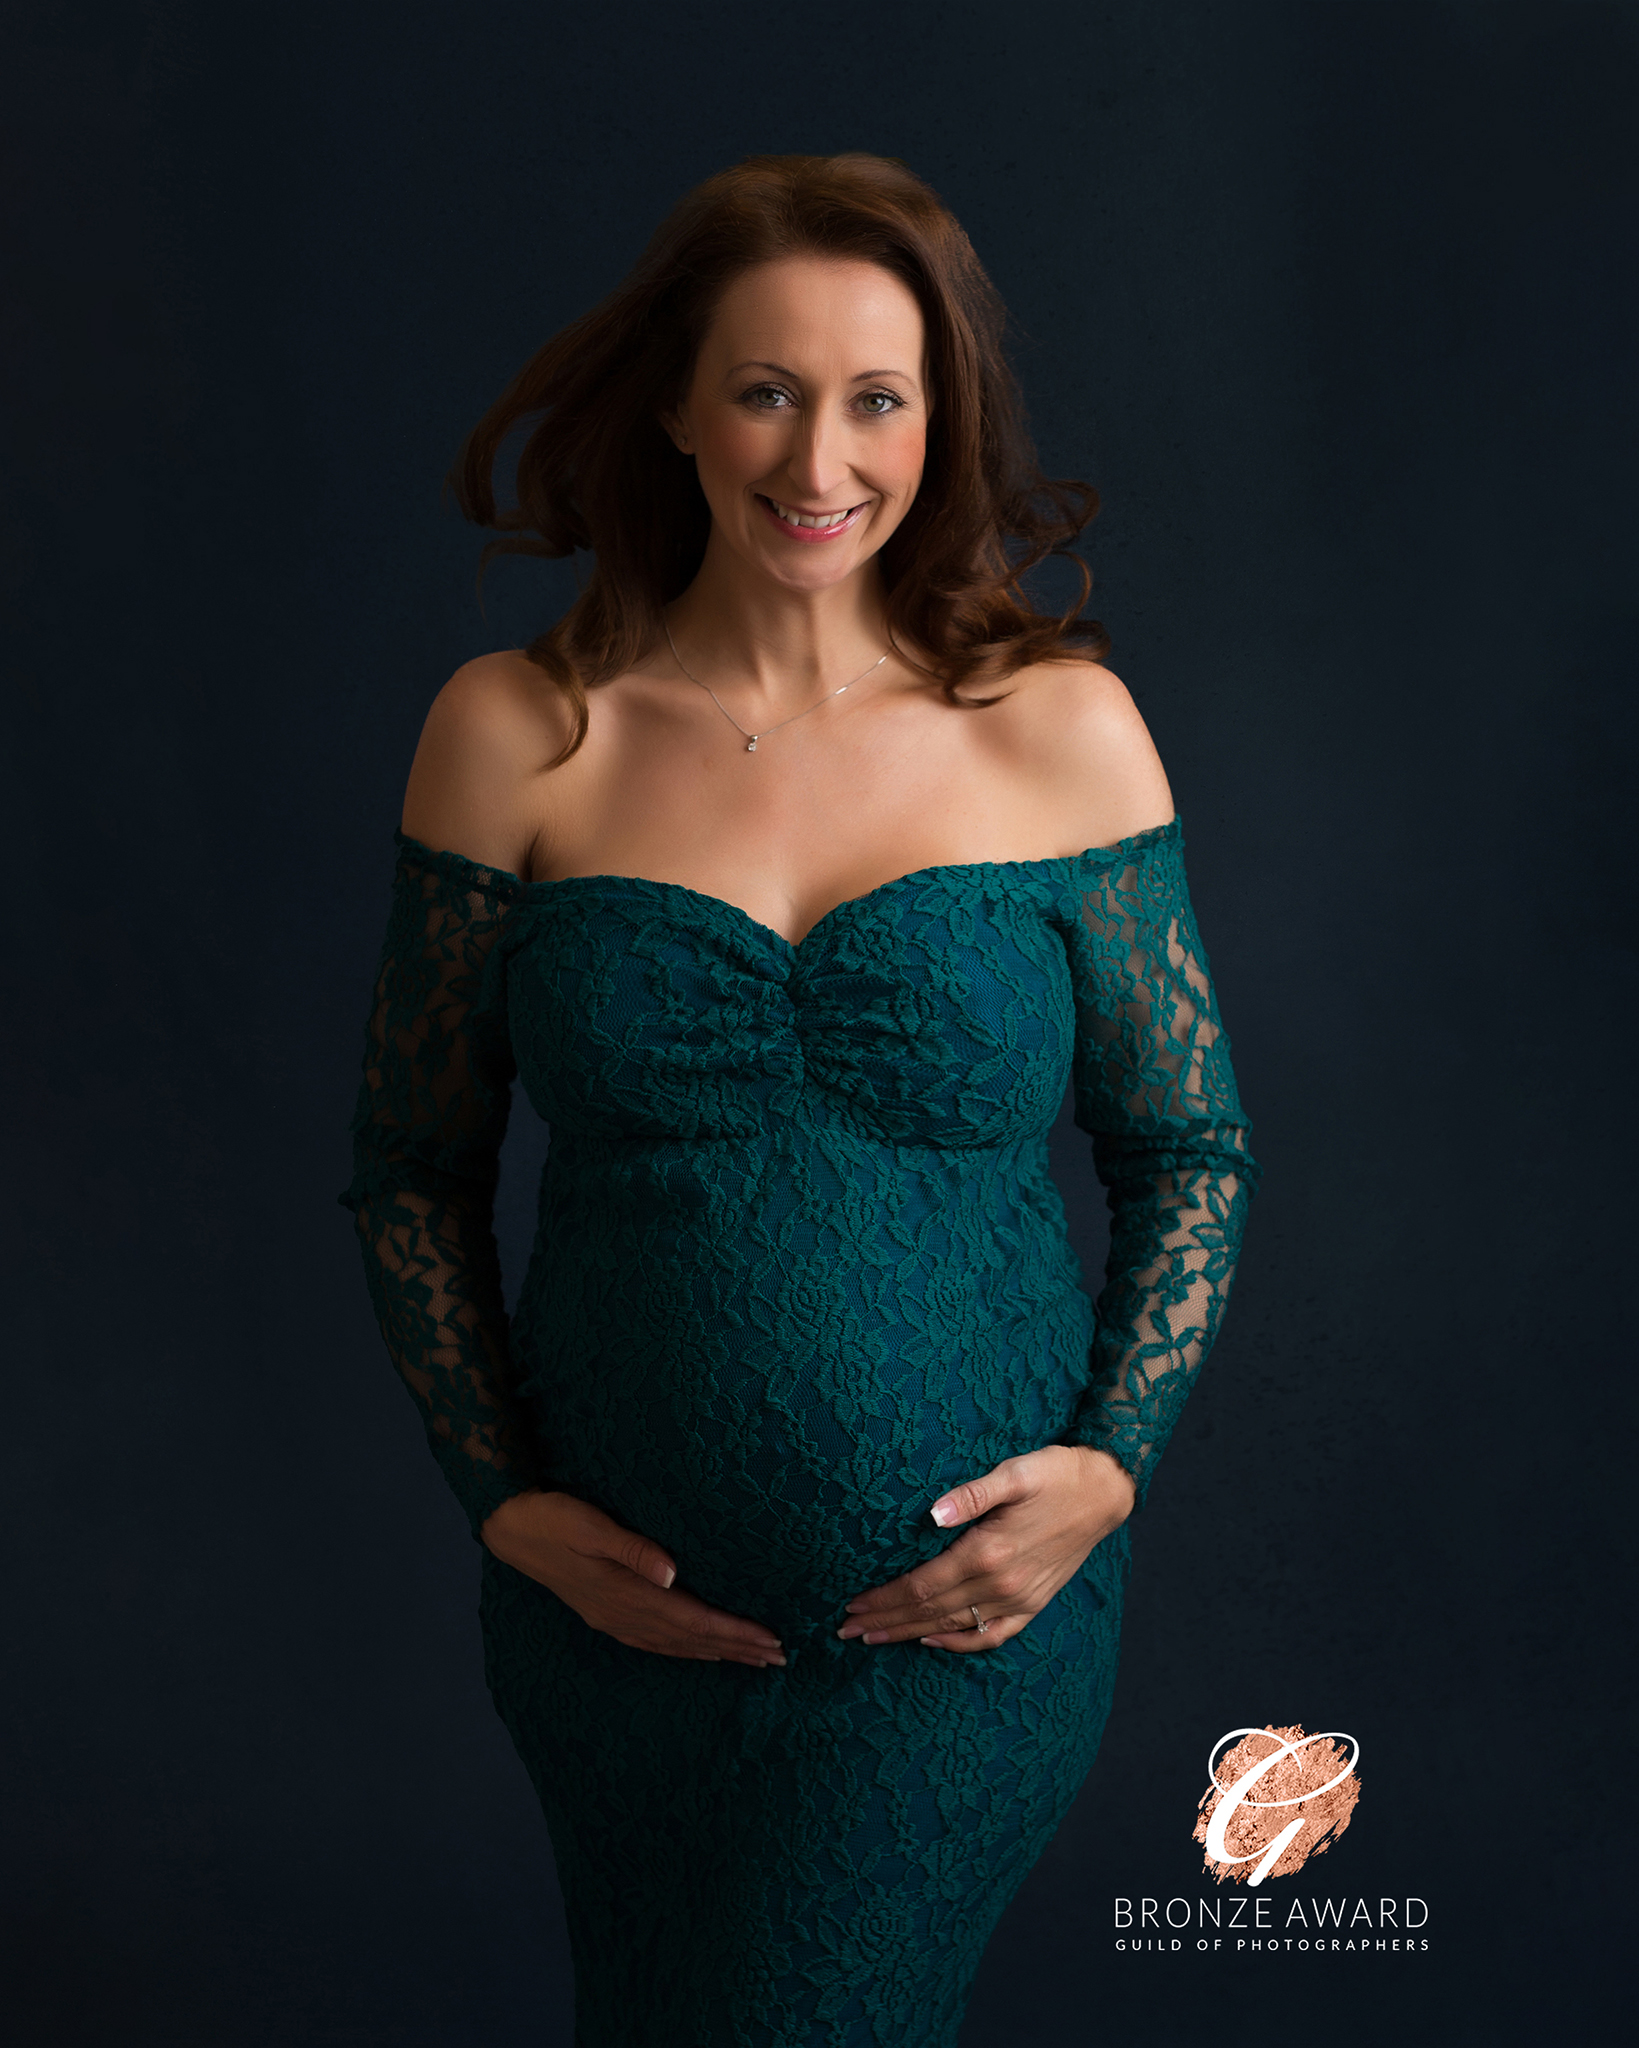 Award Winning Maternity Photography 12